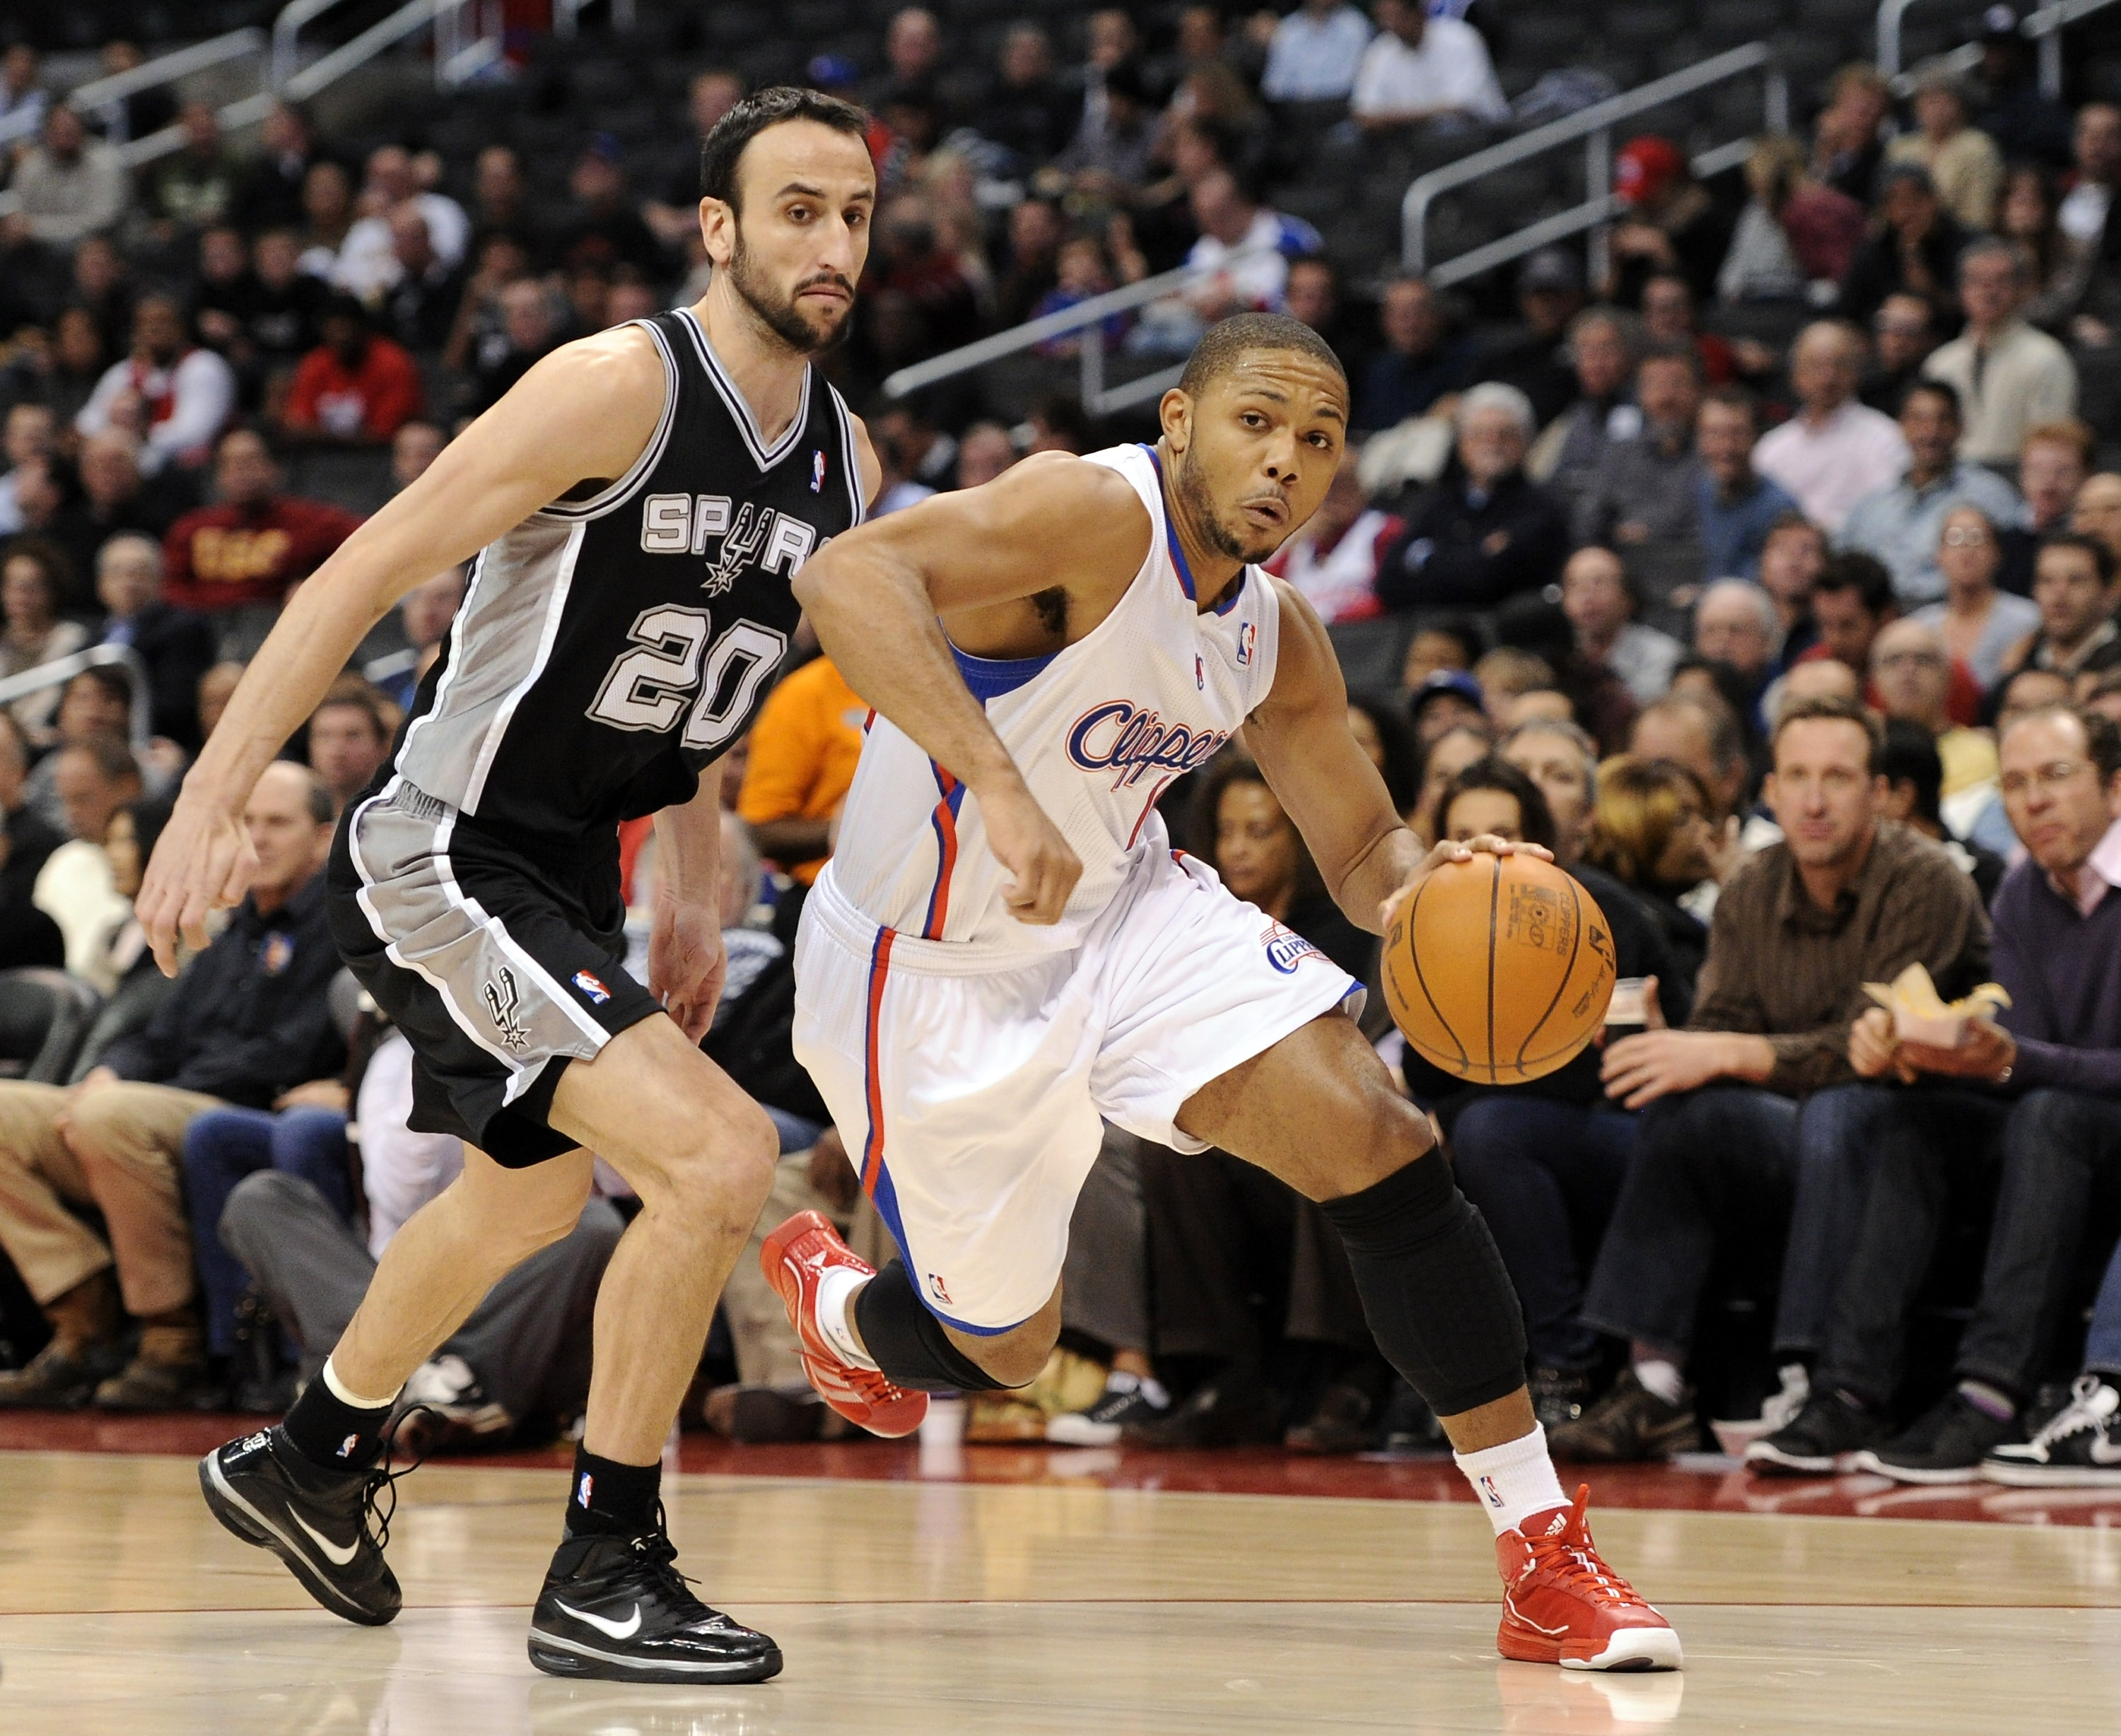 LOS ANGELES, CA - DECEMBER 01:  Eric Gordon #10 of the Los Angeles Clippers drives dribbles around Manu Ginobili #20 of the San Antonio Spurs during the game at the Staples Center on December 1, 2010 in Los Angeles, California.  NOTE TO USER: User express